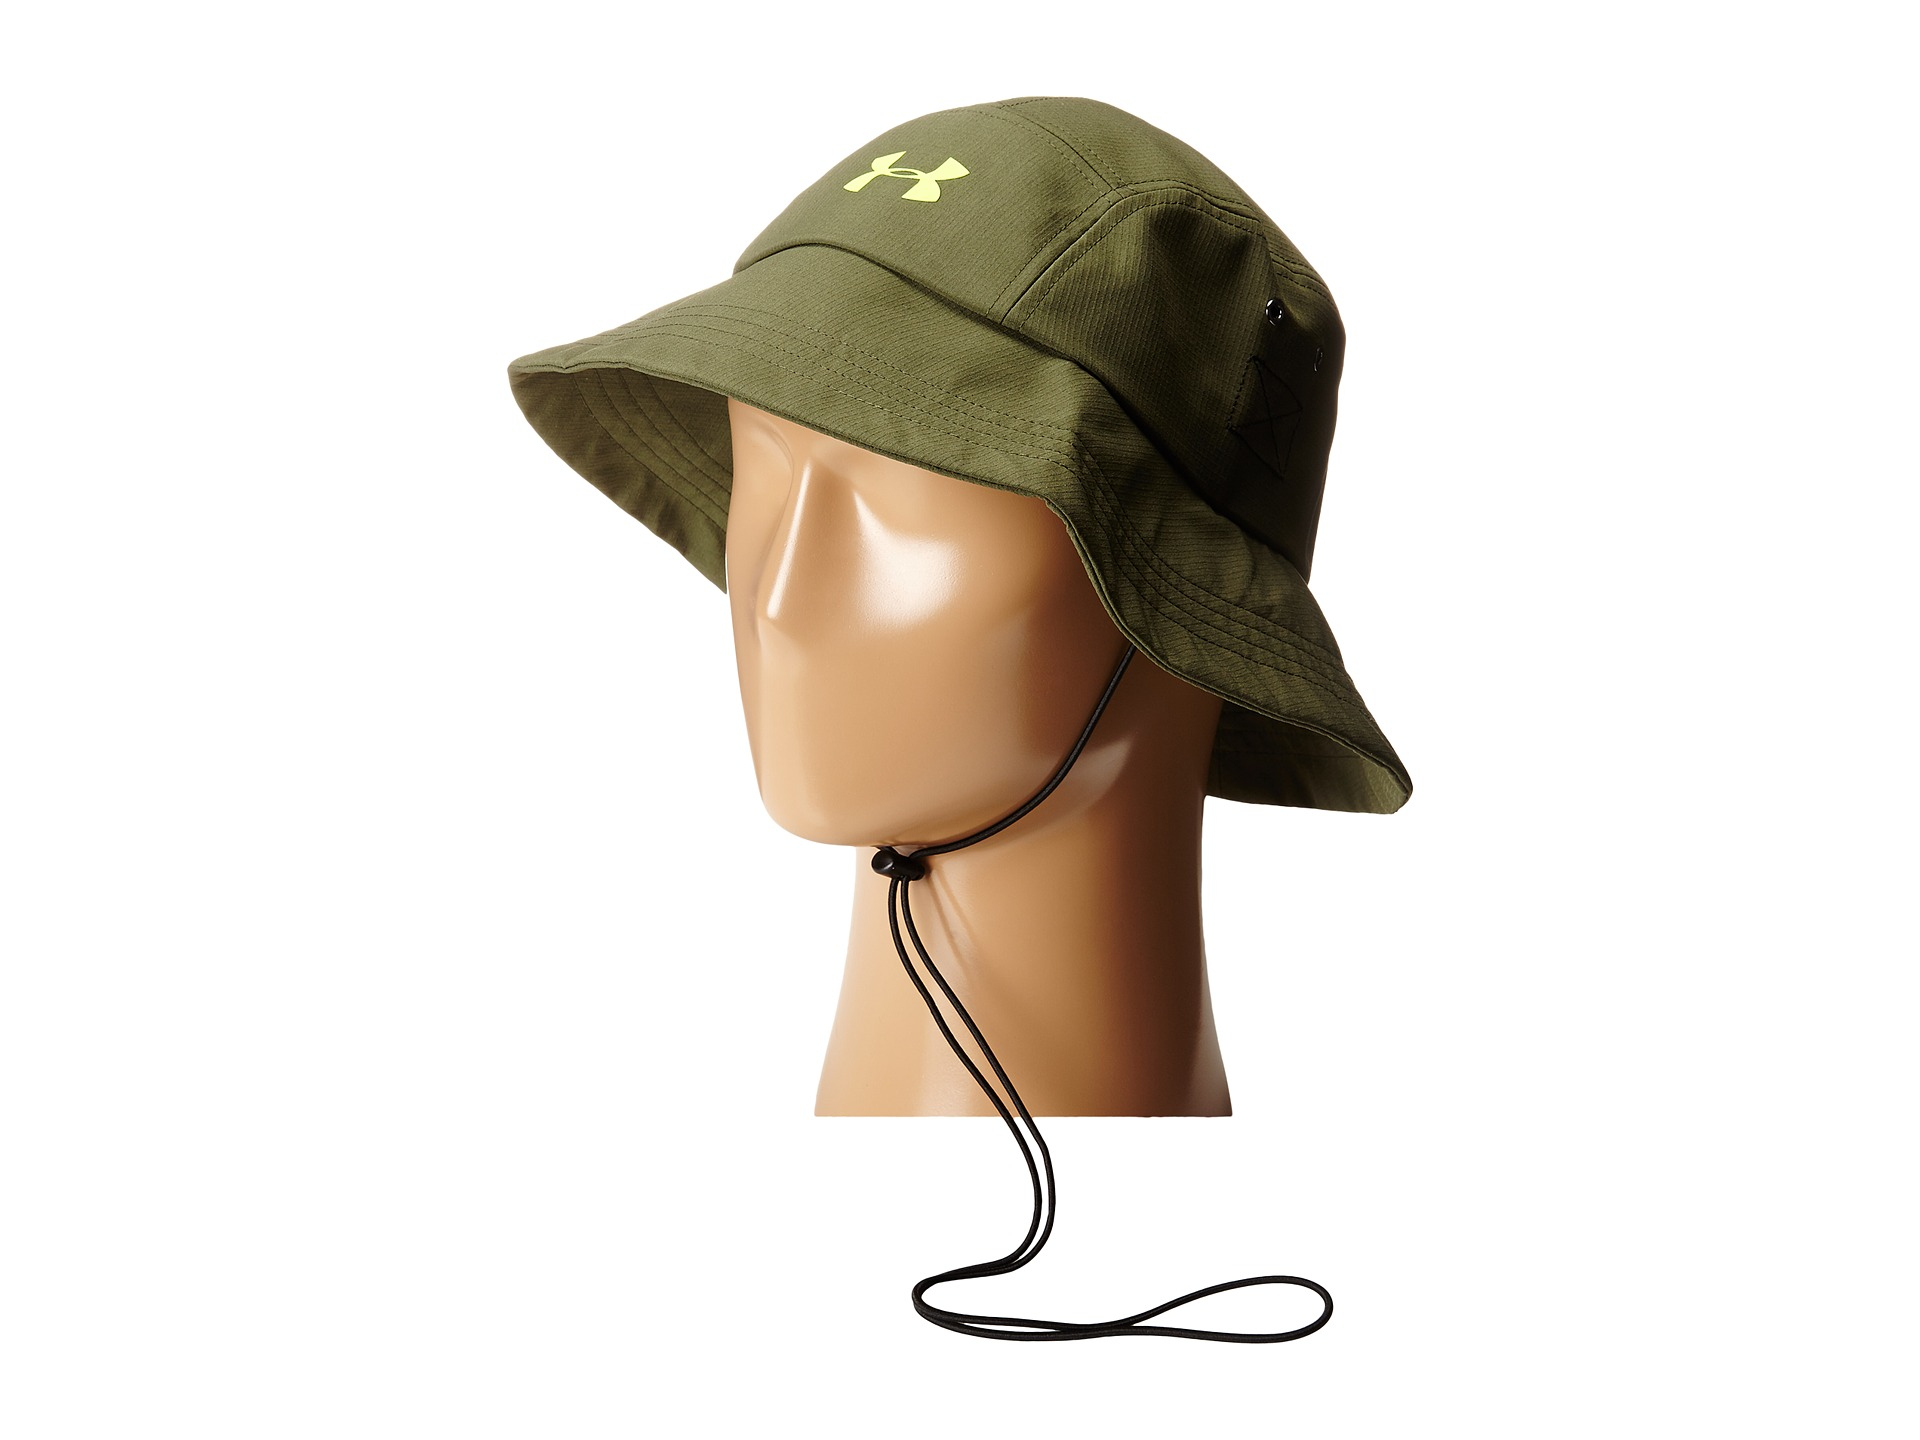 Lyst - Under Armour Ua Toughest Bucket Hat in Green for Men 10a810c28ac